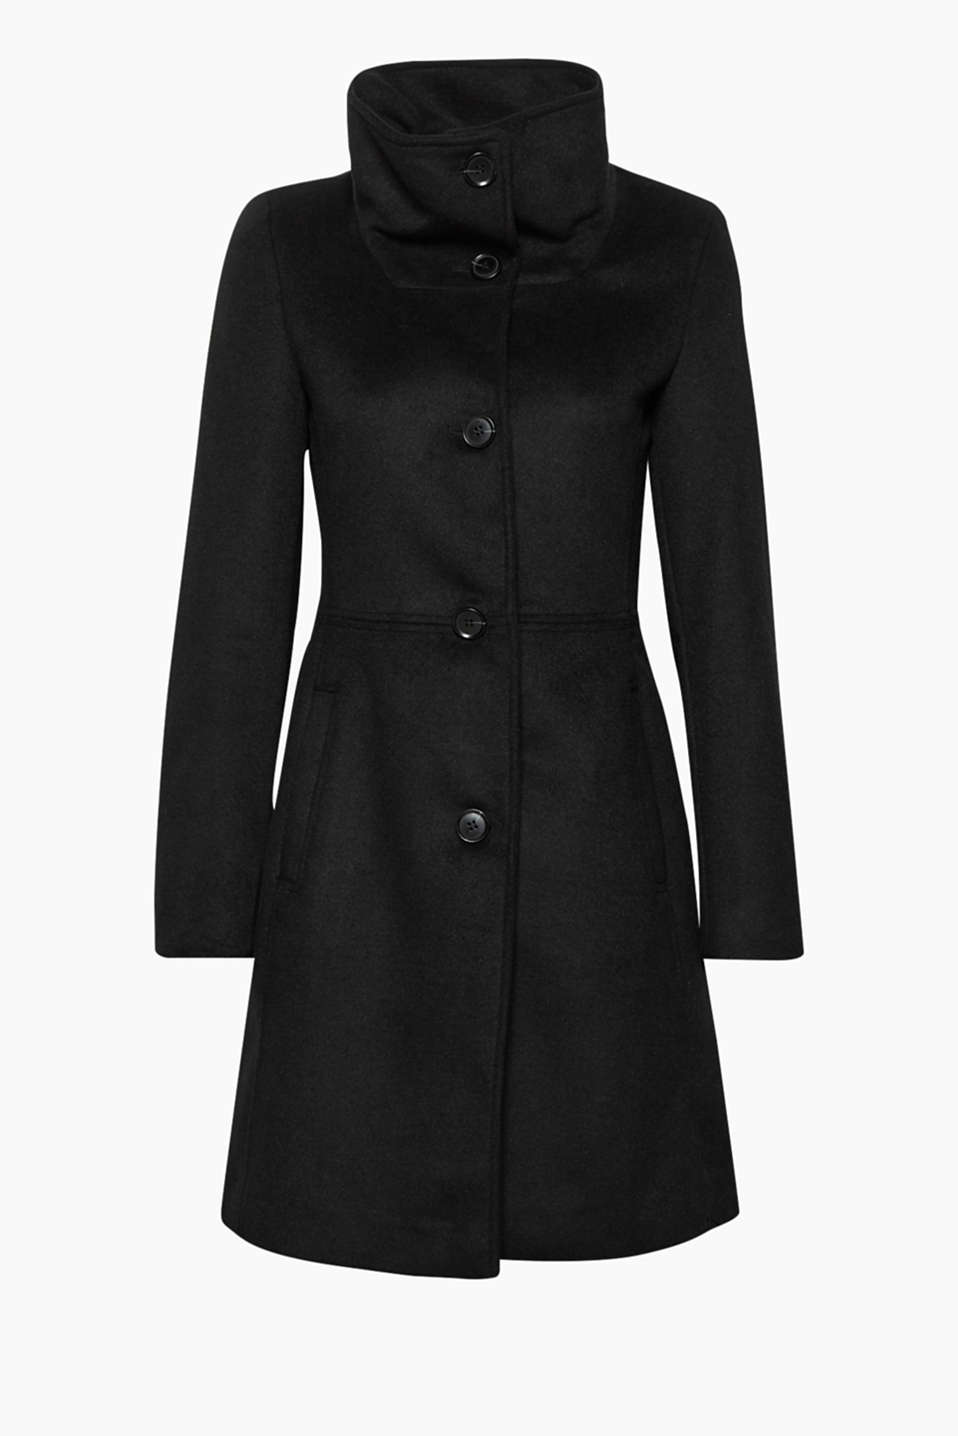 This fitted coat made of high-quality blended wool is a sophisticated companion for mild winter days